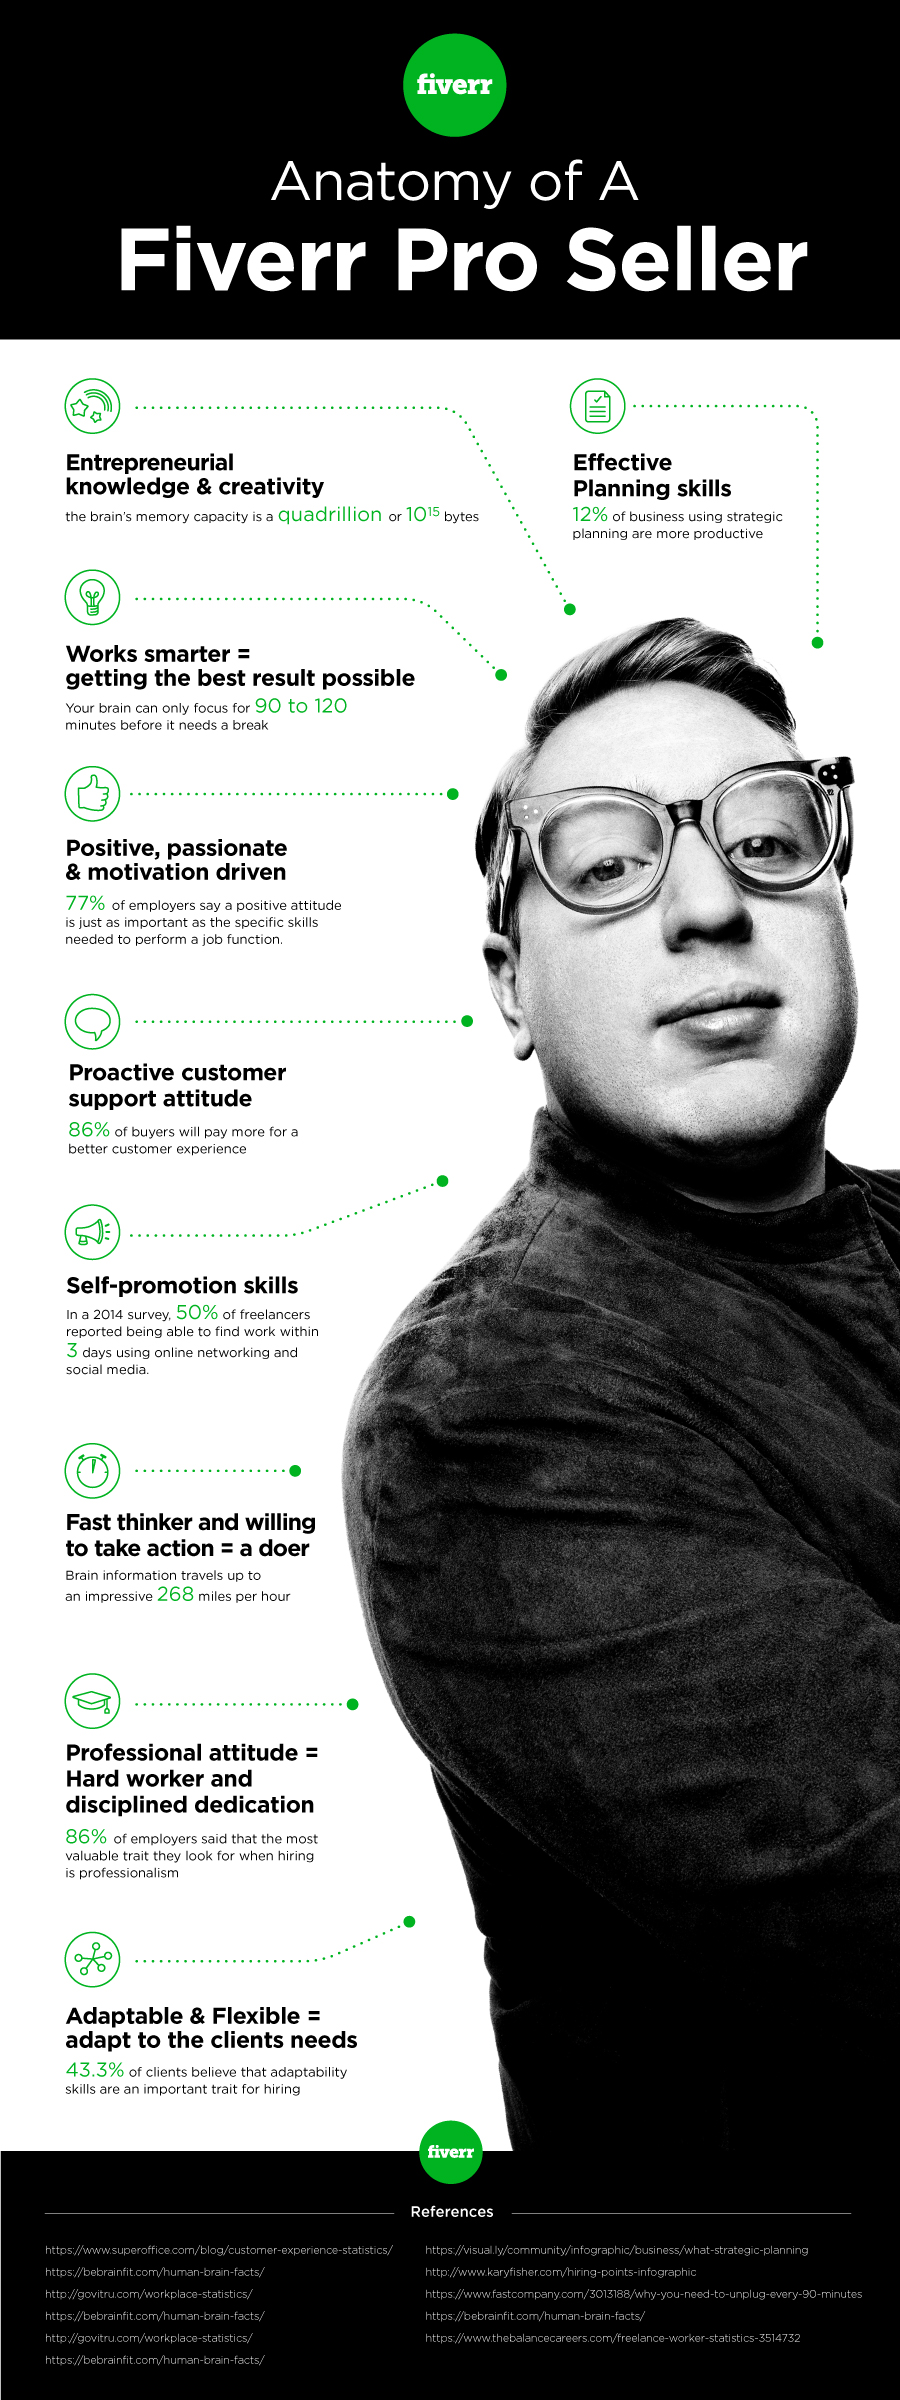 anatomy of a fiverr pro seller